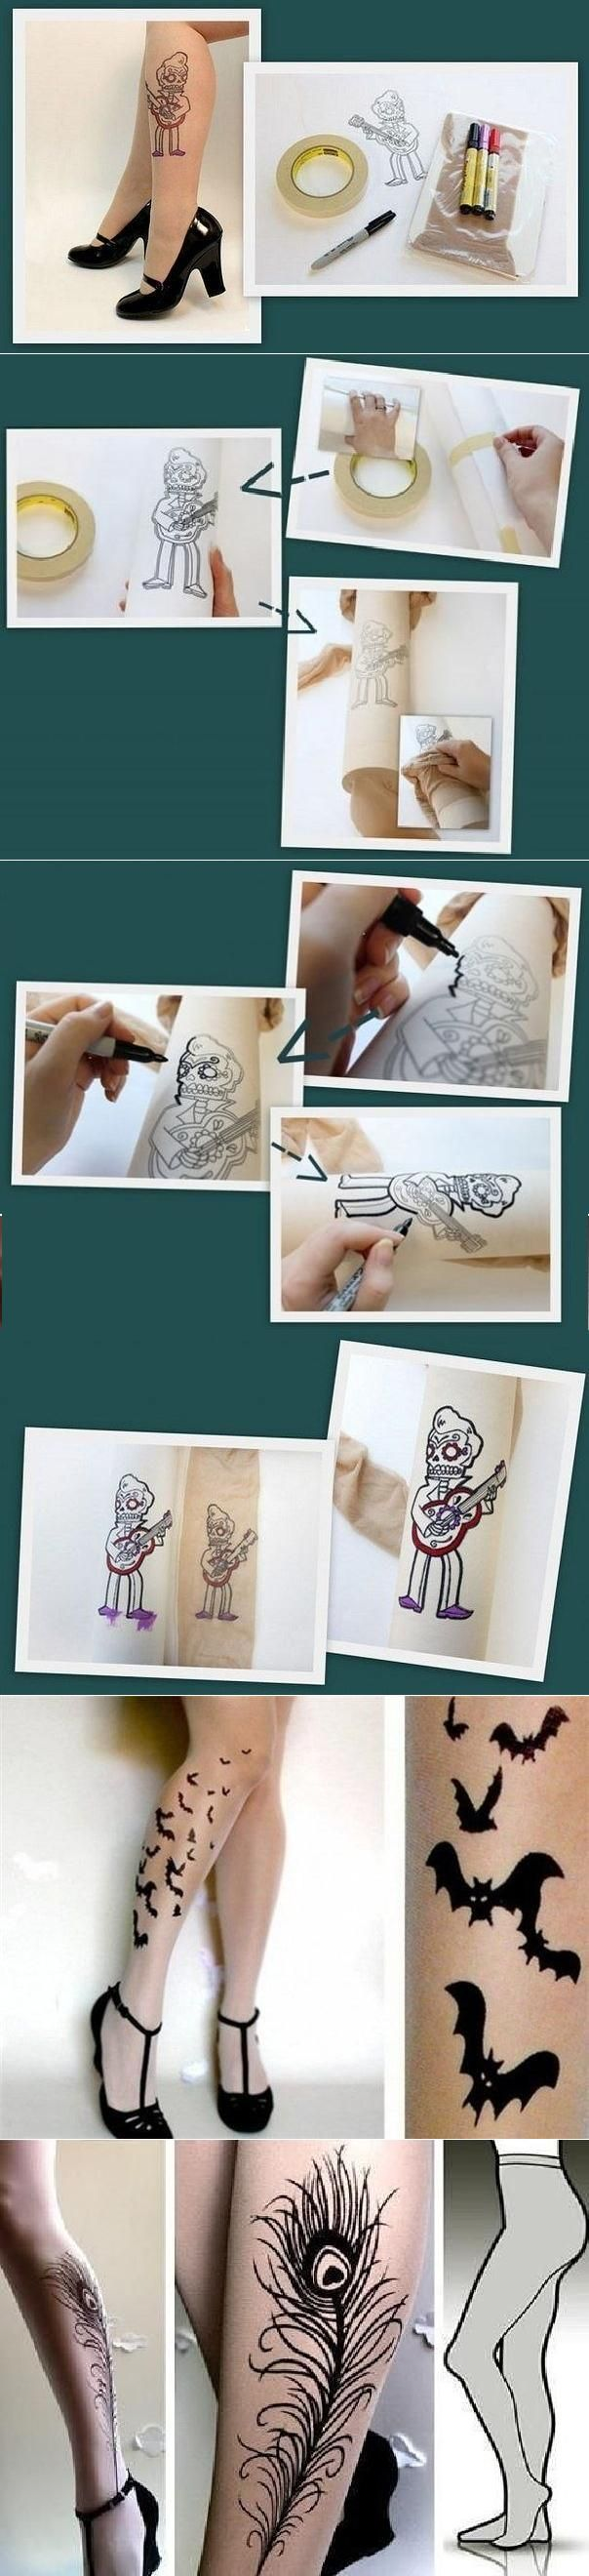 DIY Pantyhose Tattoo - a fun idea for any photoshoot - temporary tattoo, tatted…                                                                                                                                                     Plus